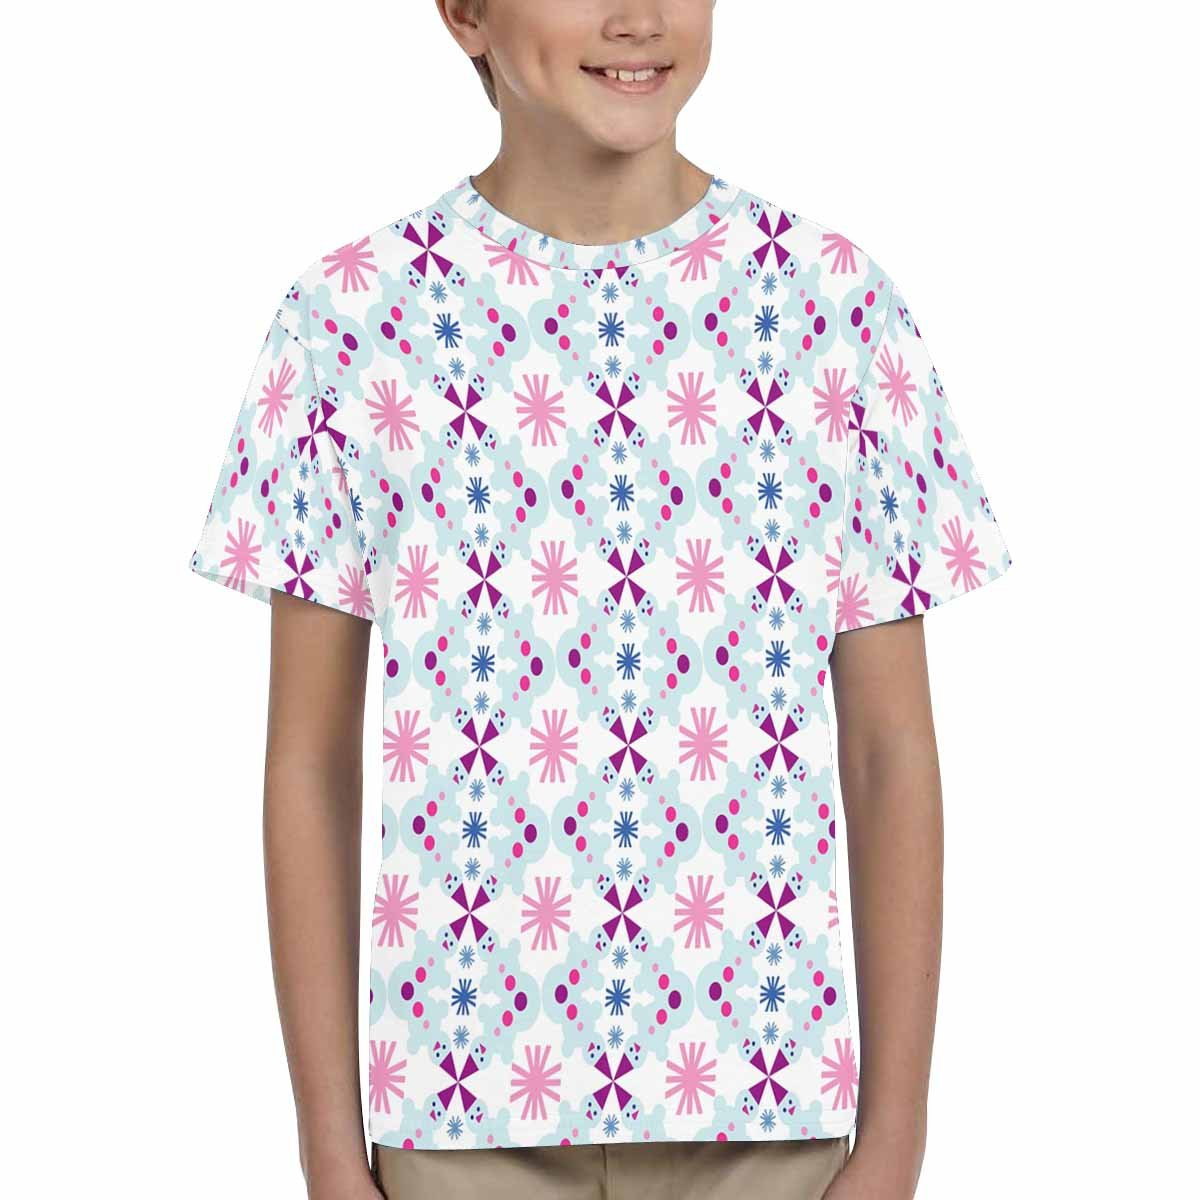 INTERESTPRINT Youth Crew Neck T-Shirt Christmas Snowman and Snowflakes XS-XL